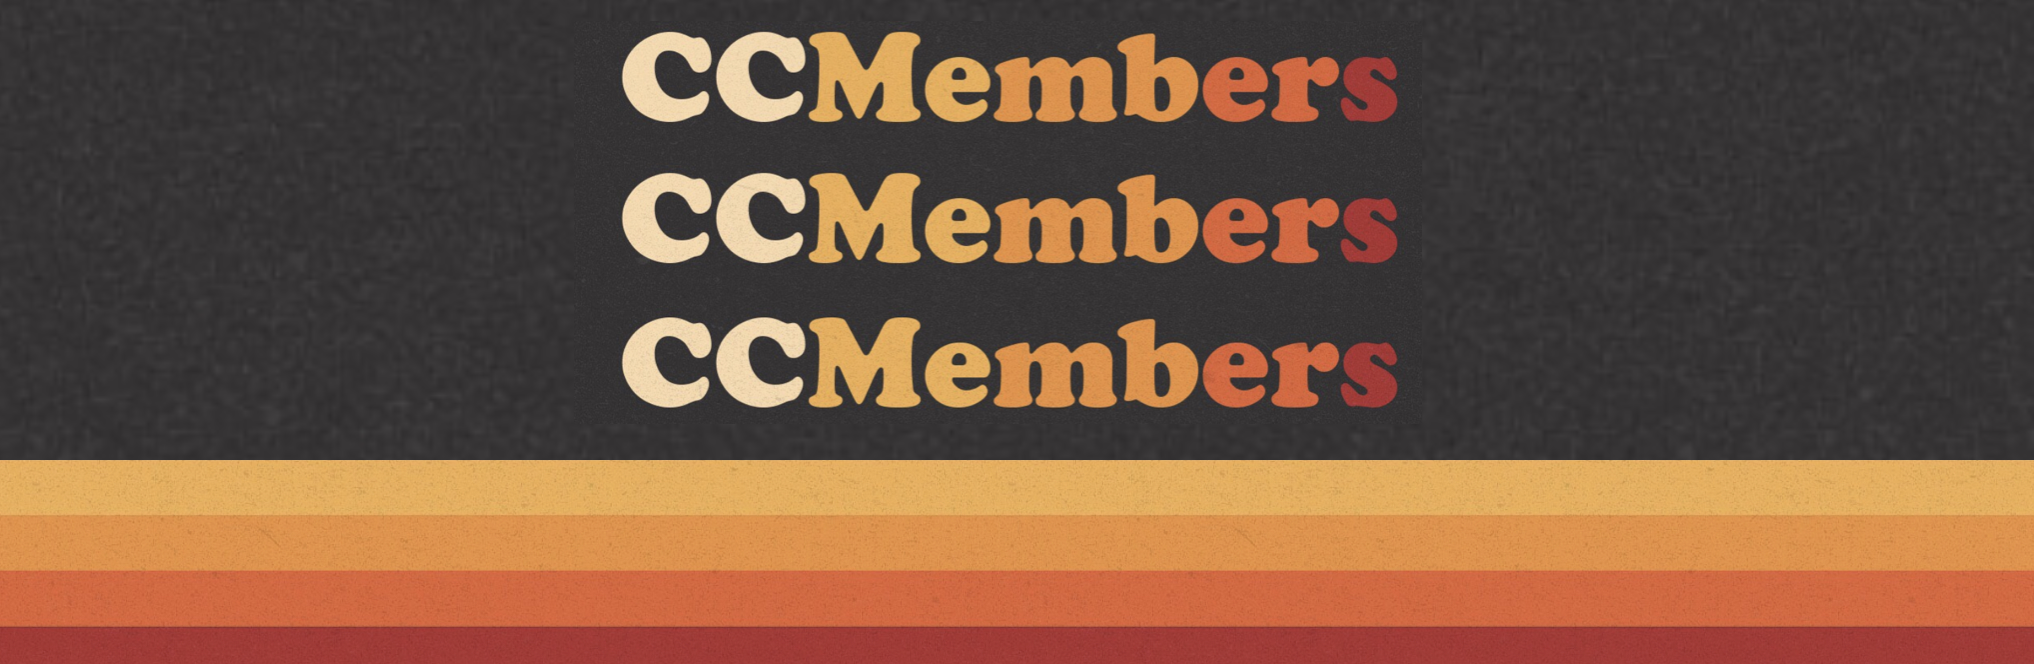 CCMembers banner